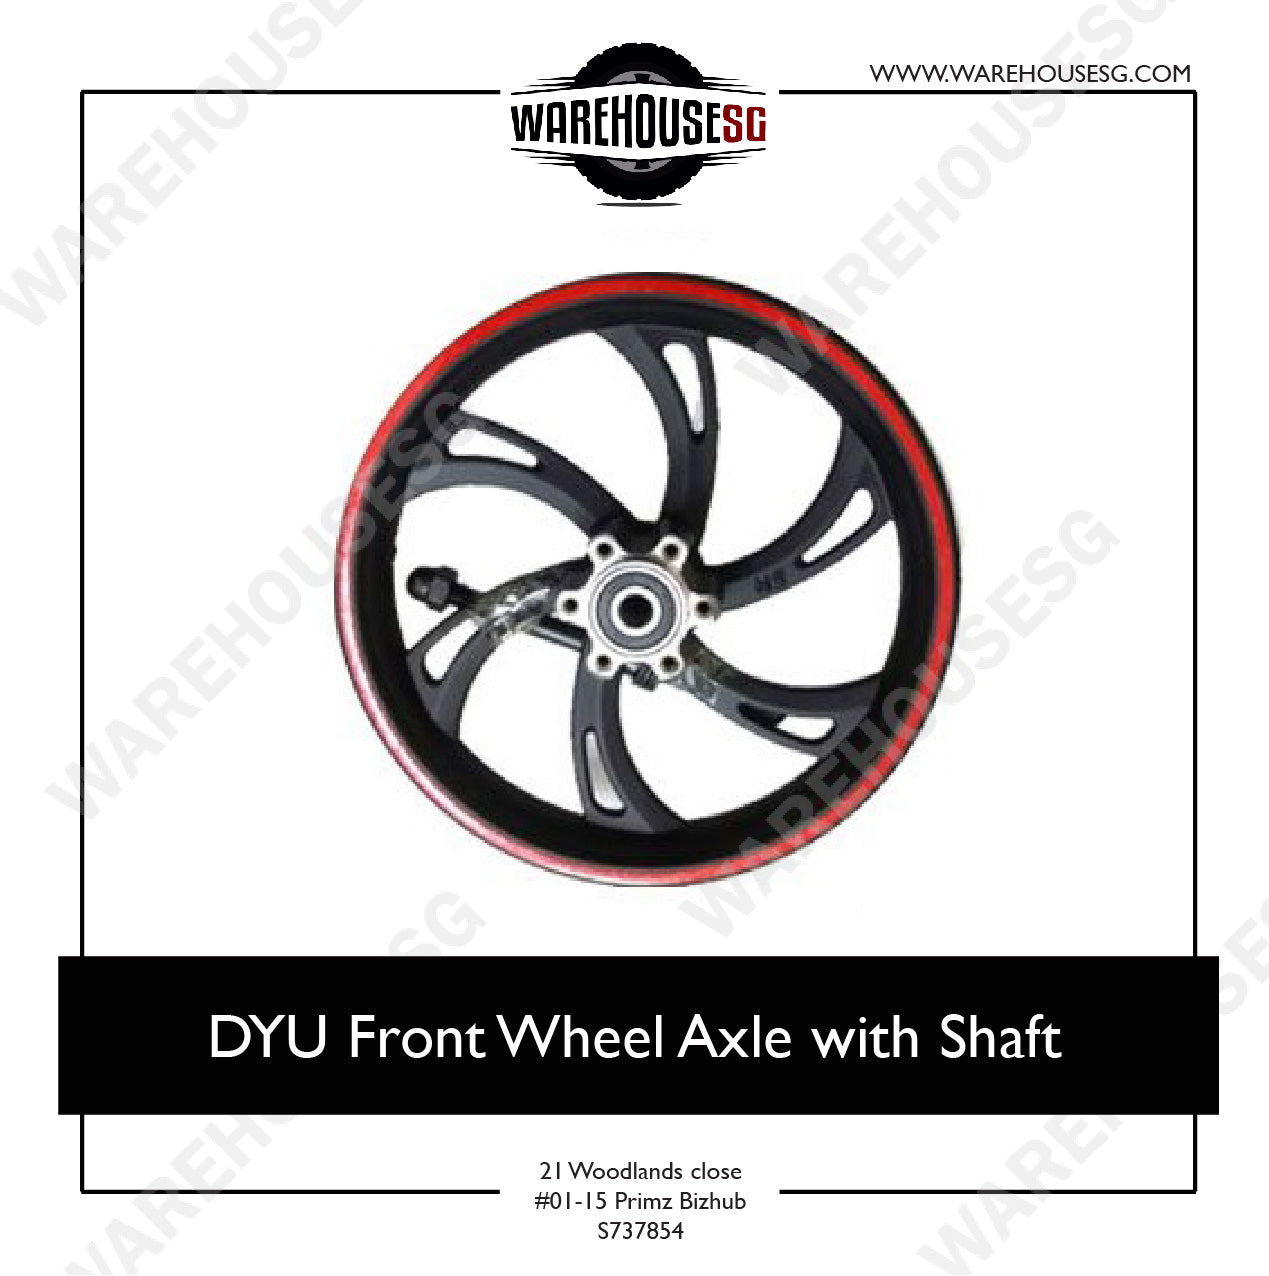 DYU Front Wheel Axle with Shaft